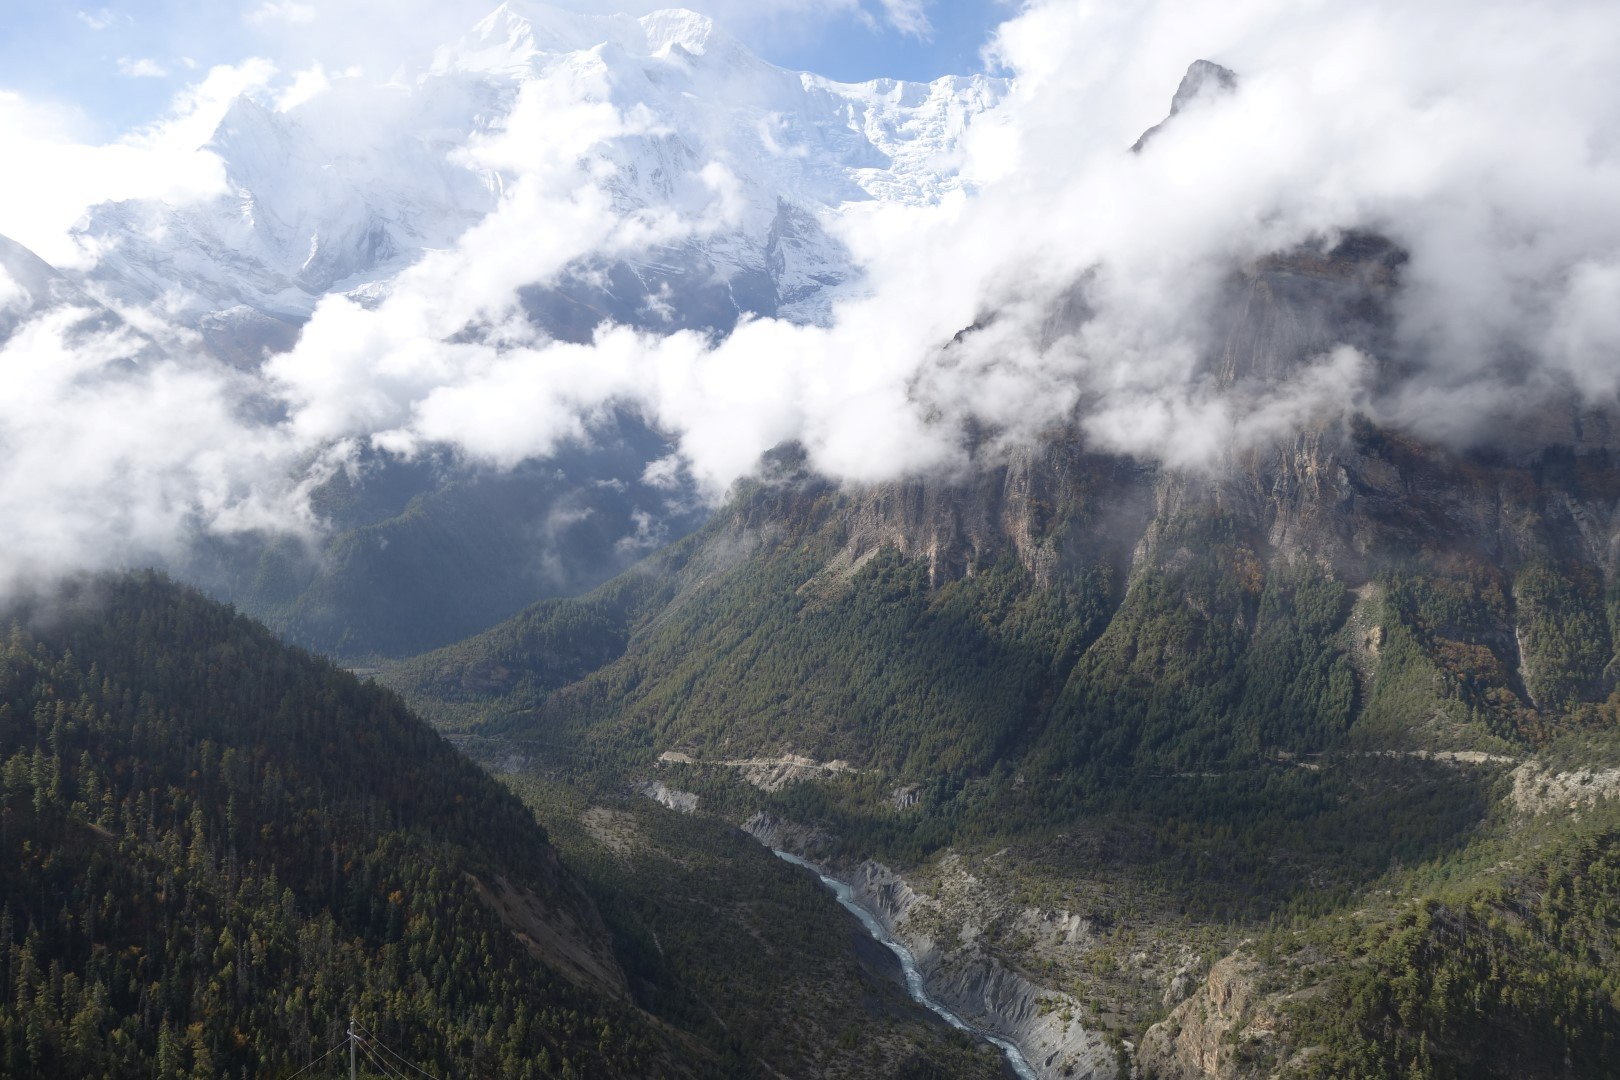 The views are definitely worth the climb - Annapurna Circuit route